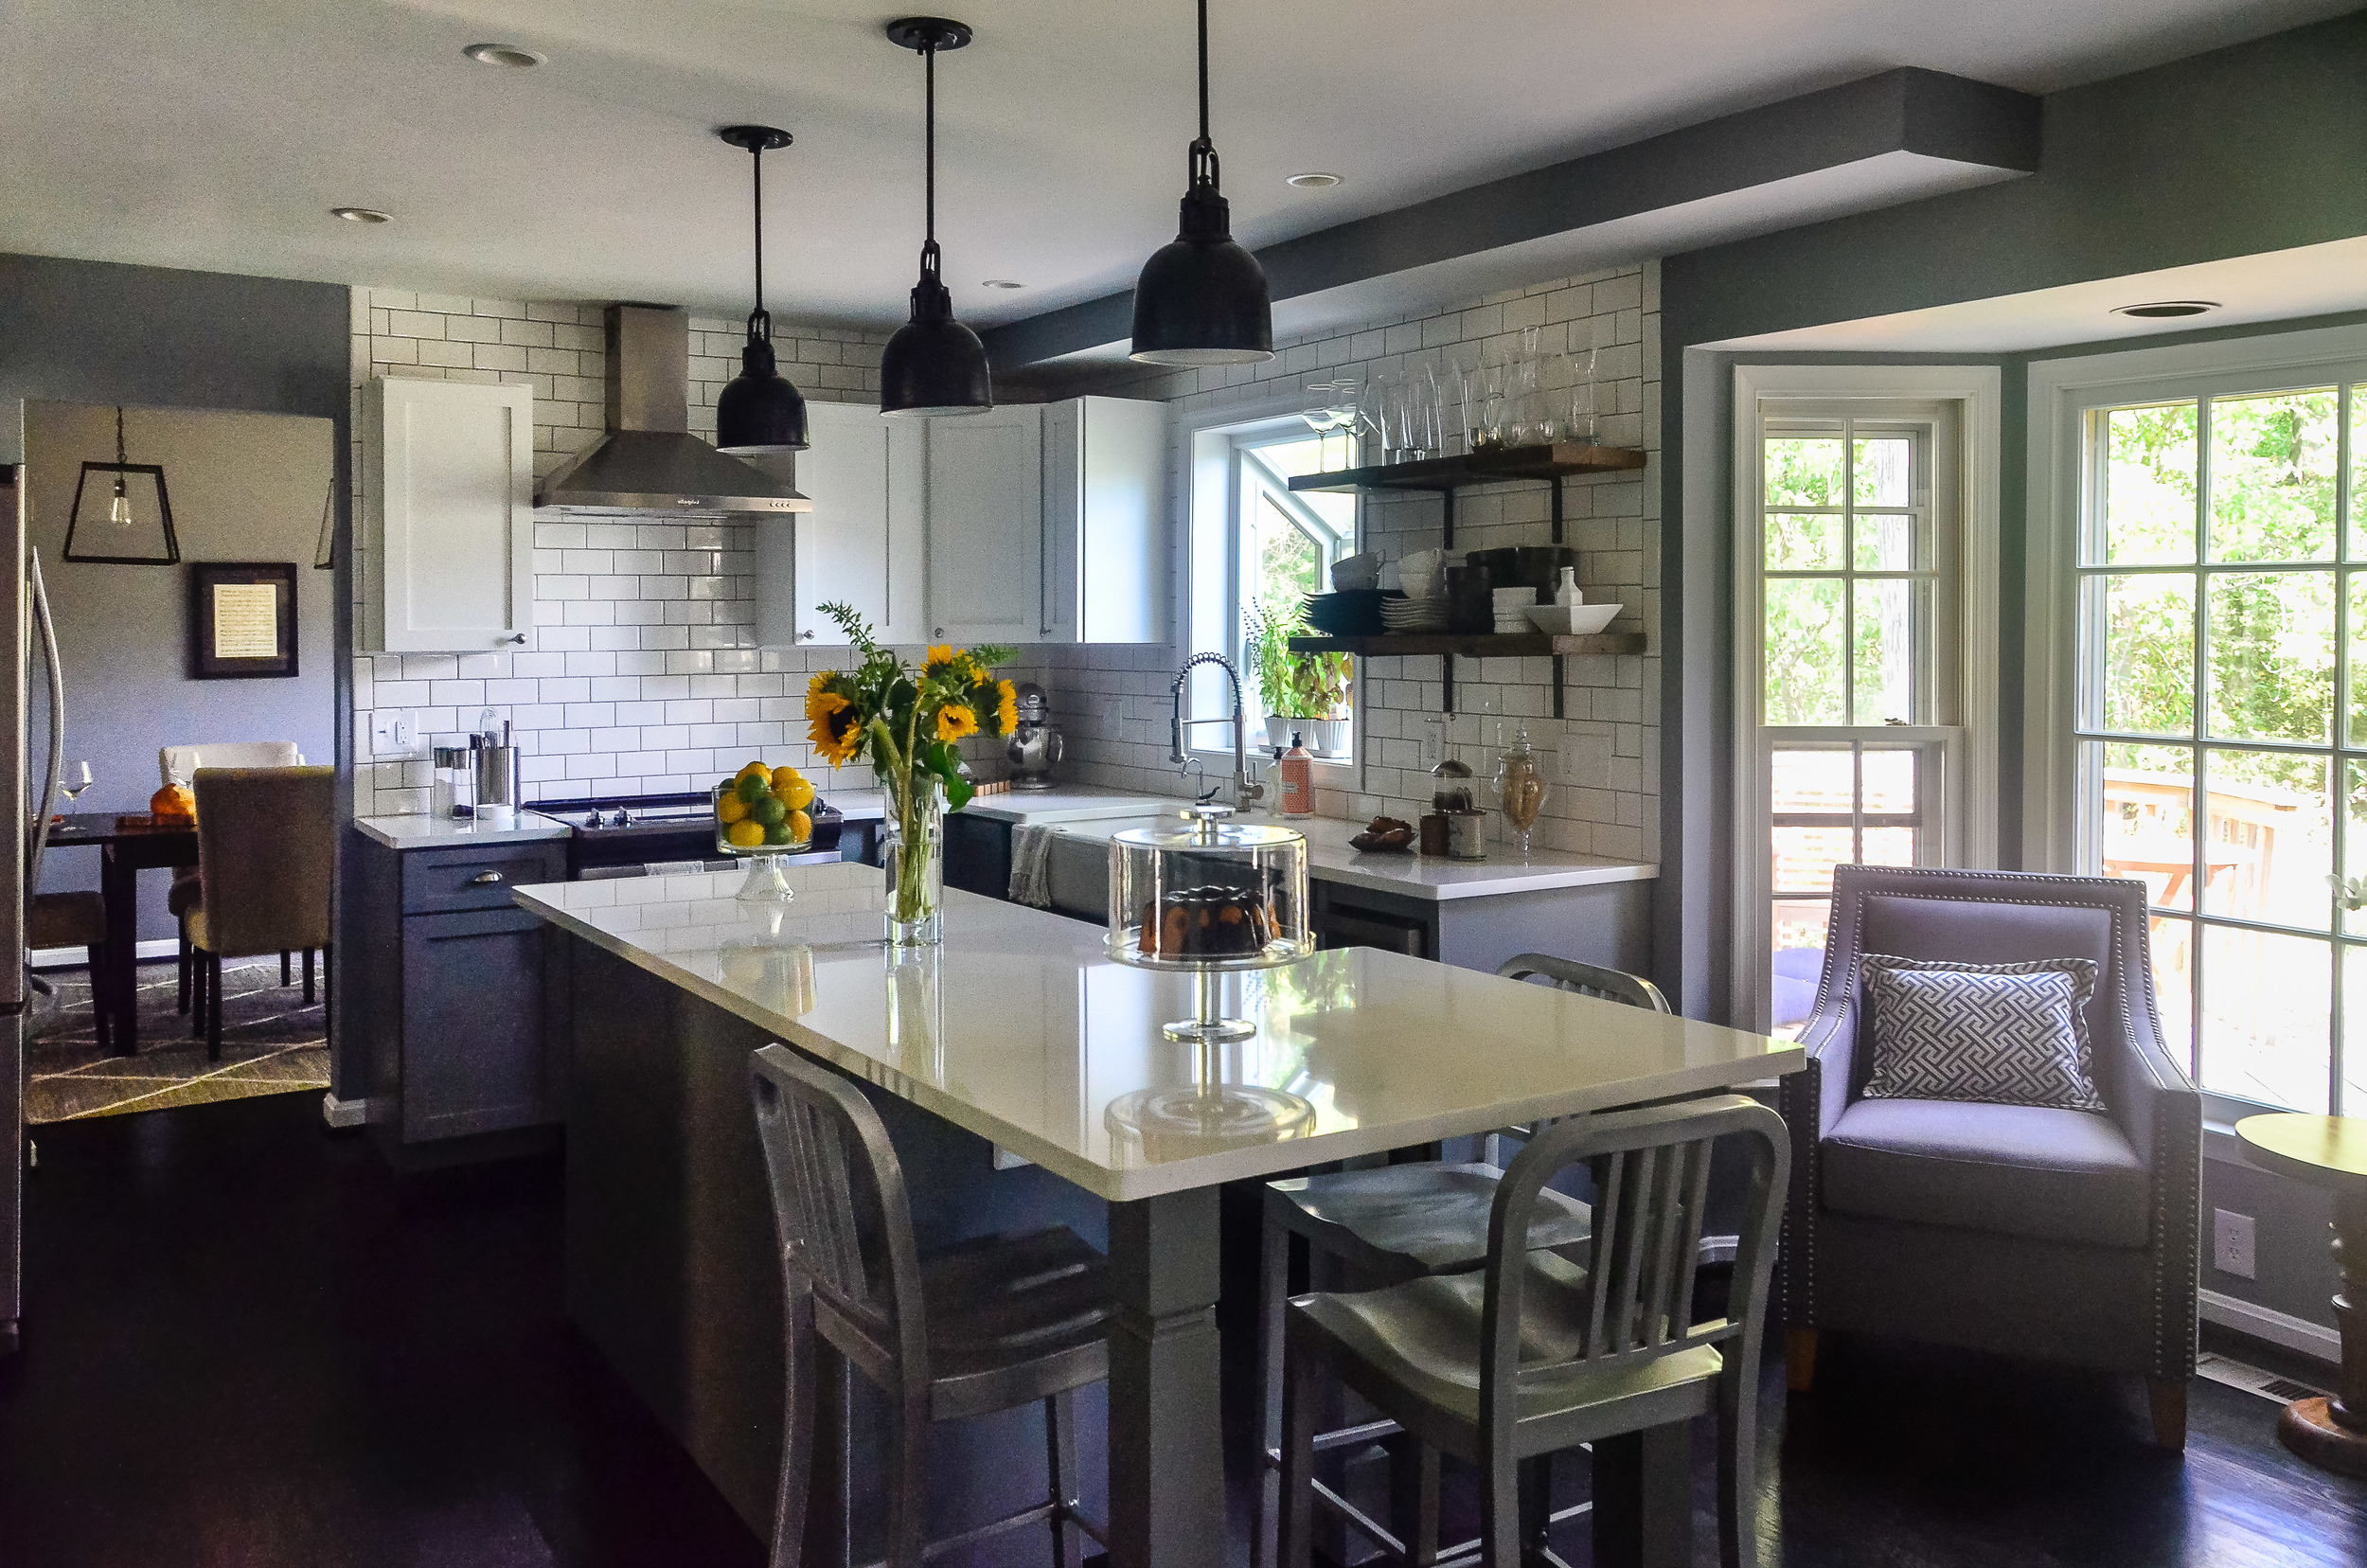 Selections that needed to be made to create this kitchen include cabinets, flooring, tile, grout, countertop, custom shelving/hardware, appliances, furniture, faucet, sink, paint, three styles of cabinet hardware and lighting.